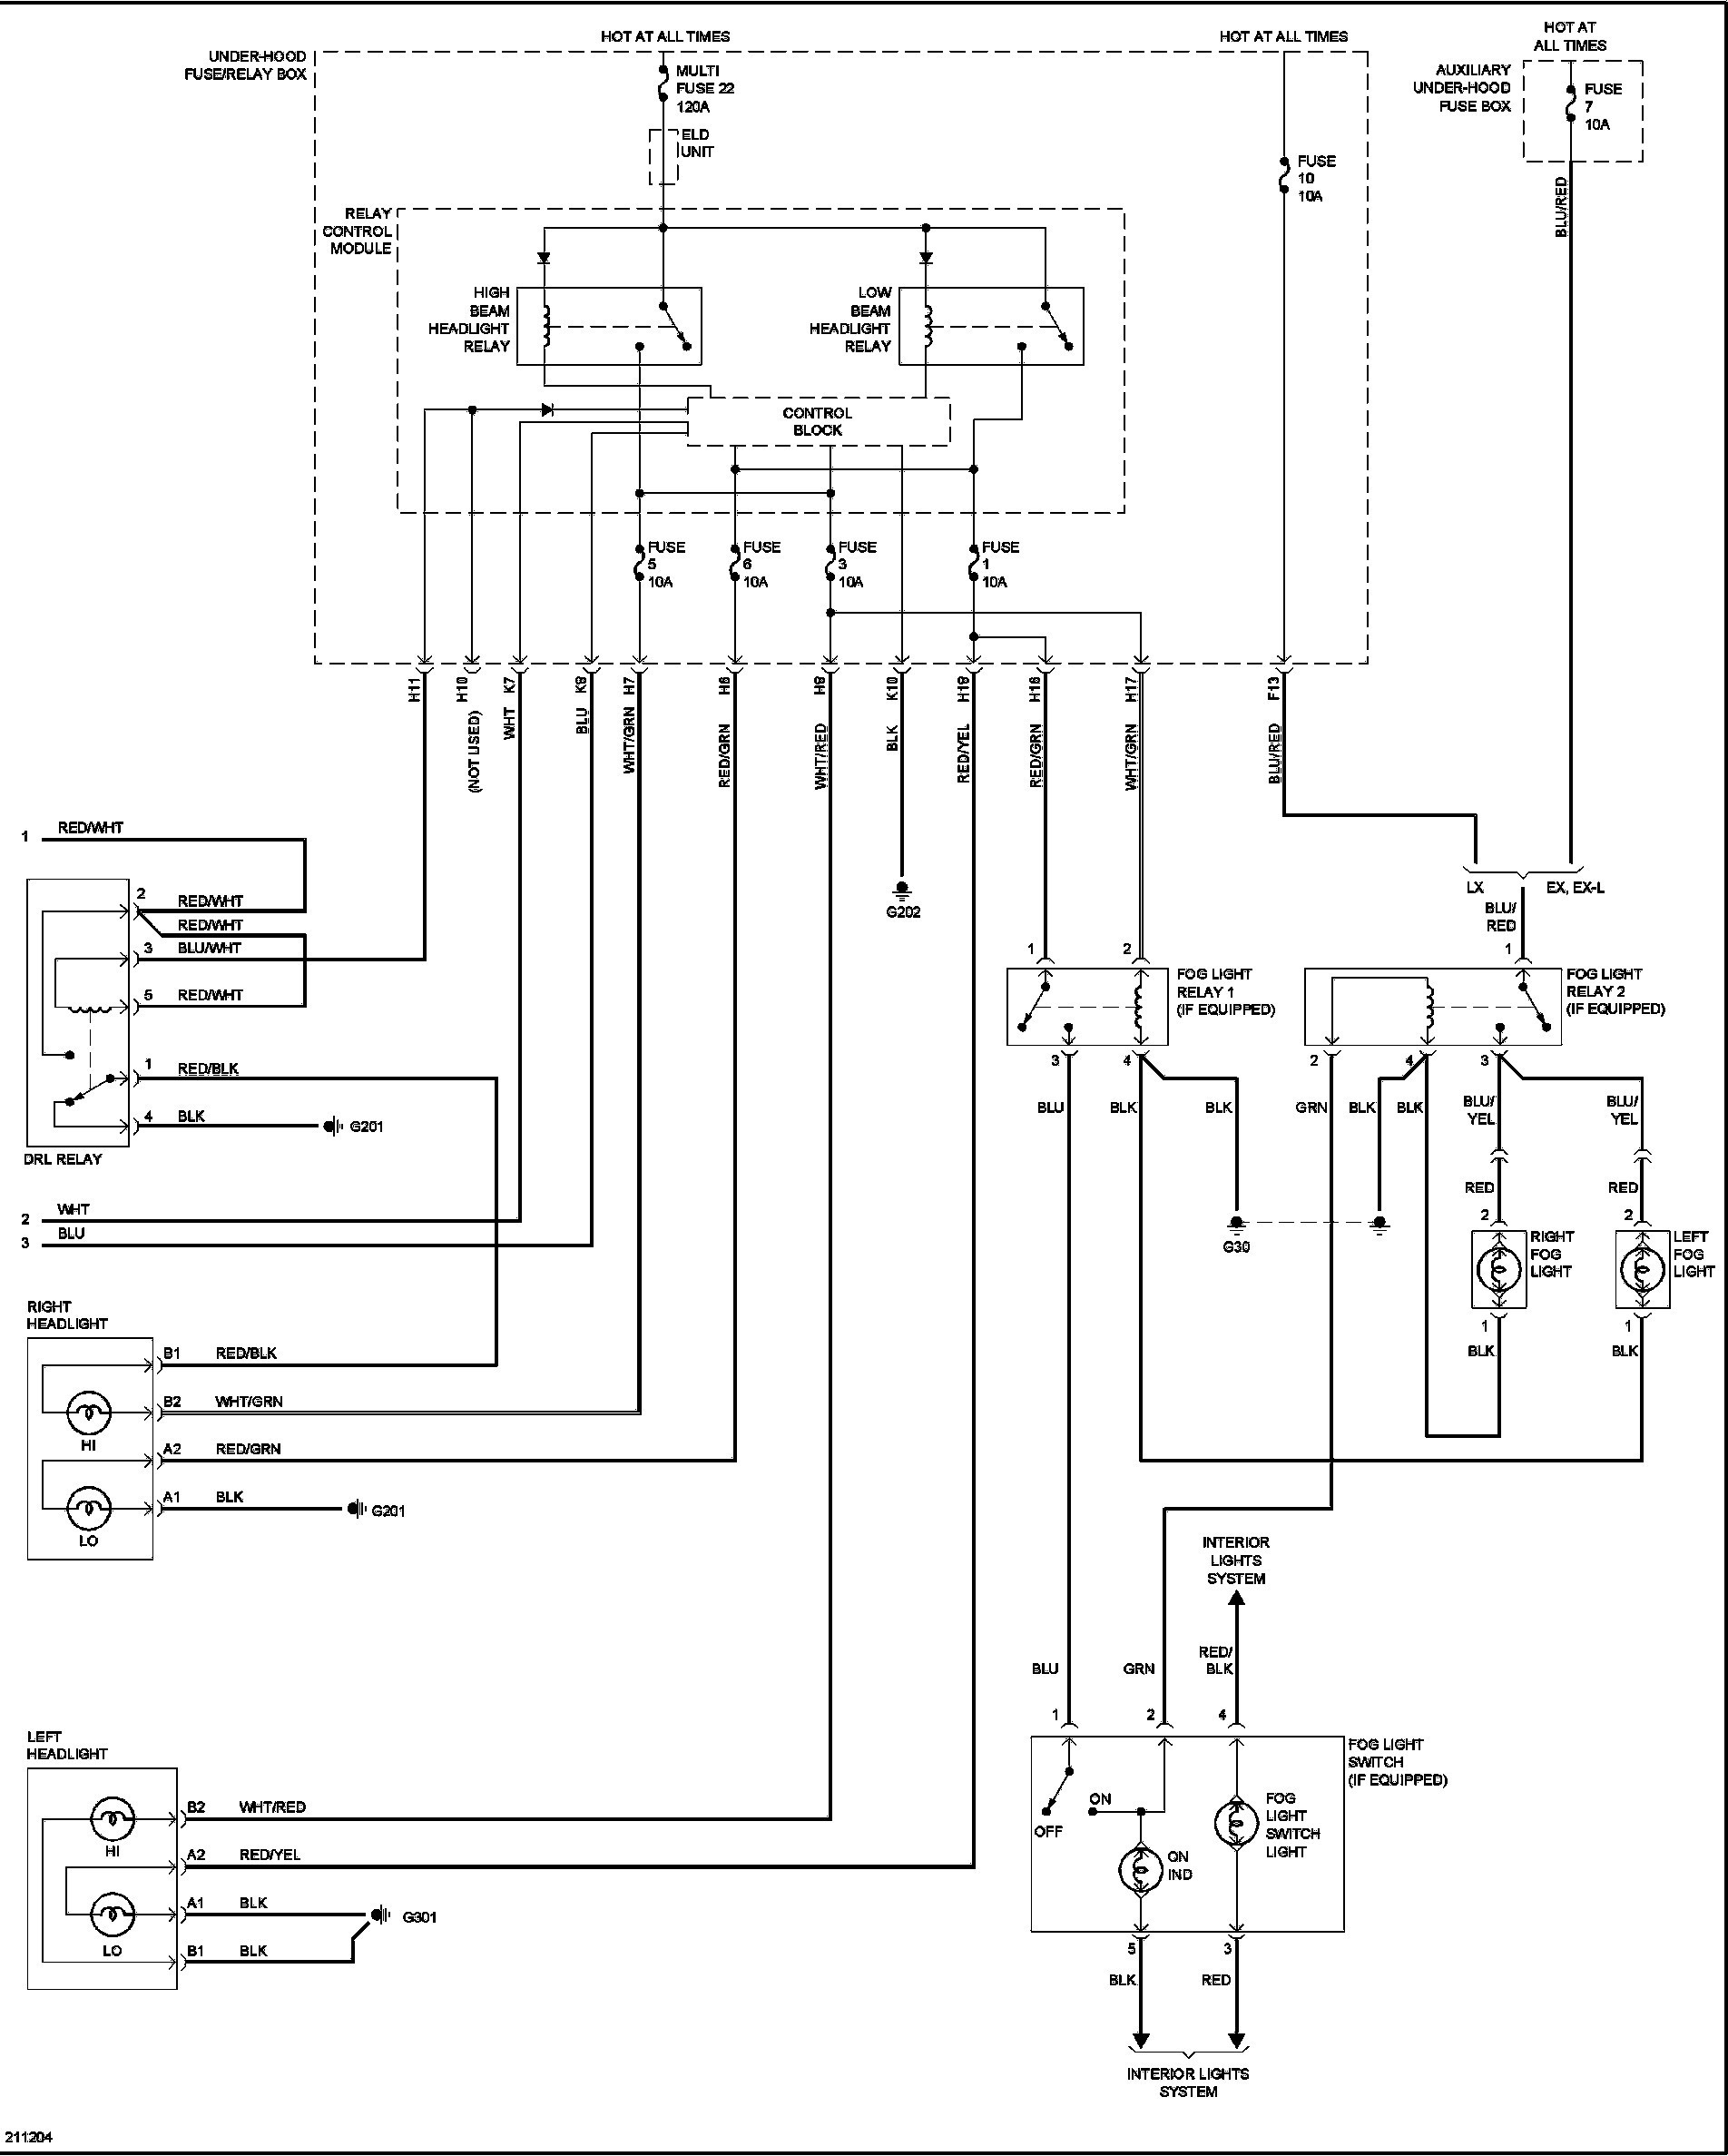 1995 Honda Accord Wiring Diagram from detoxicrecenze.com